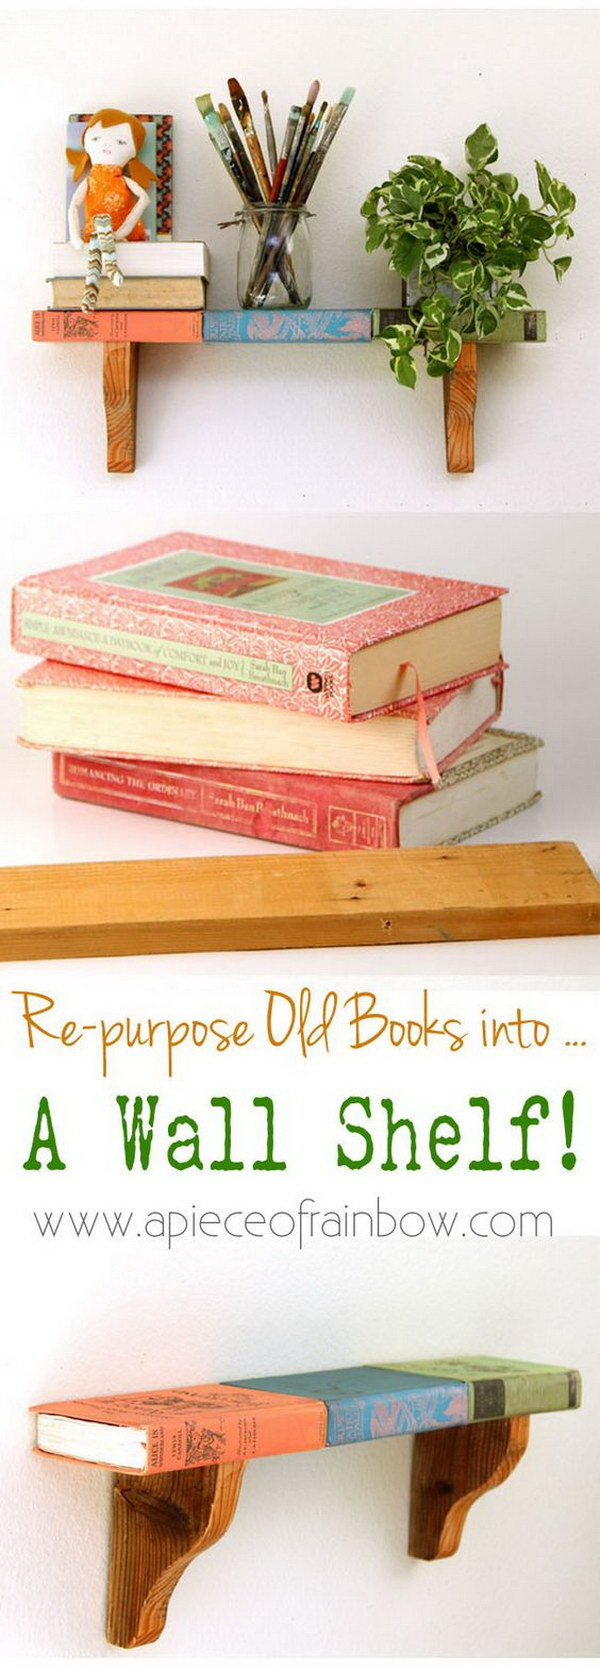 Wall Shelf From Faux Vintage Books. A fun and creative idea to make a stylish and unique wall shelf with vintage books! .